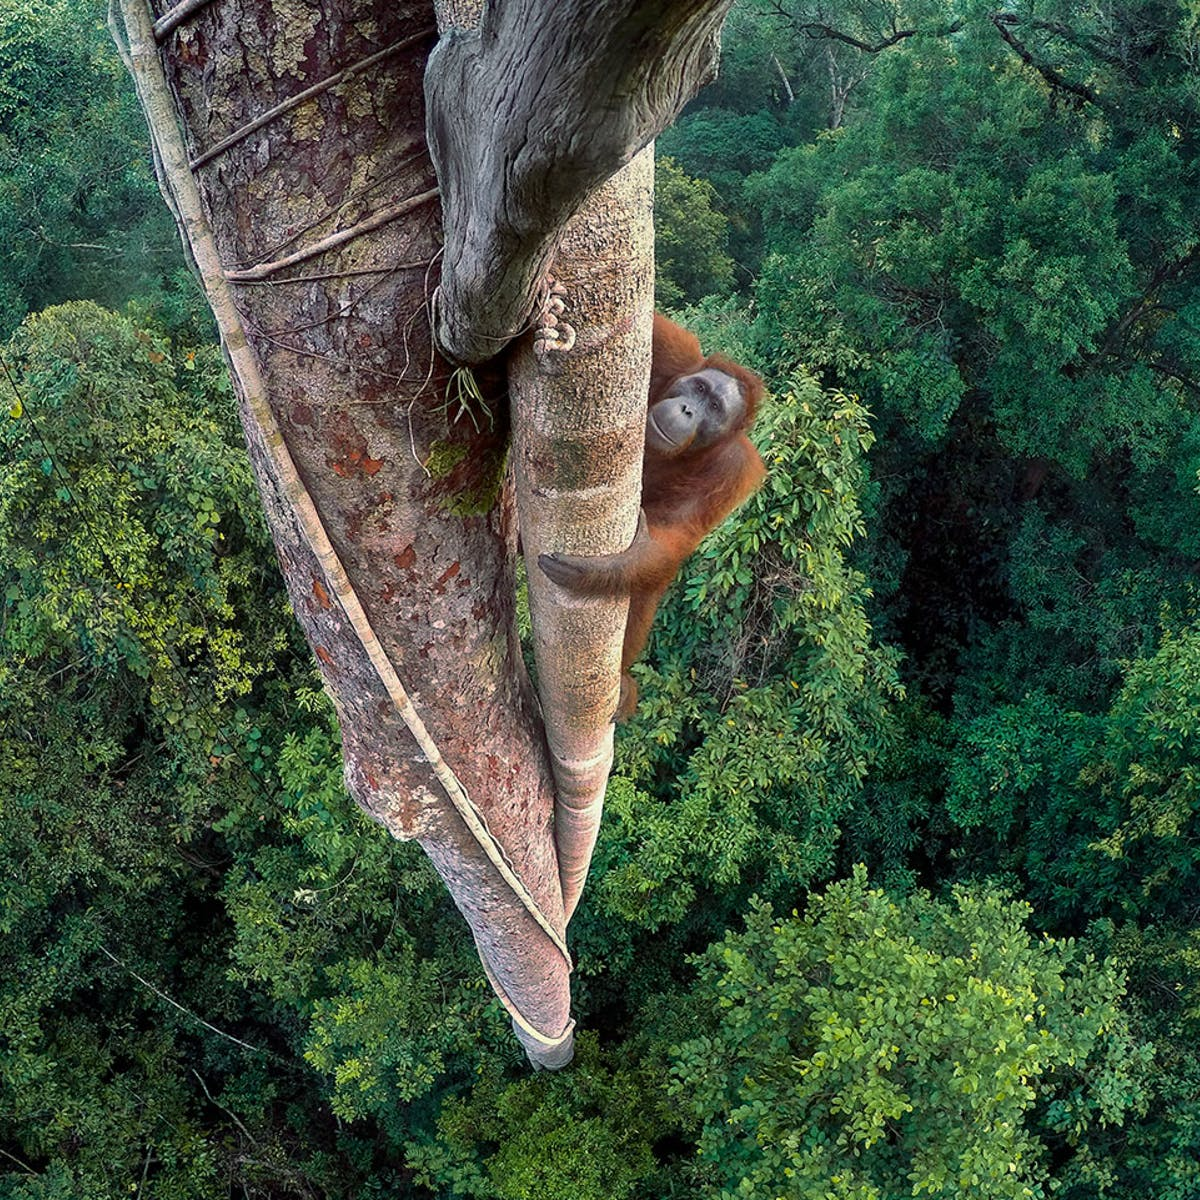 The World S Best Wildlife Photography Reveals A Fragile Beautiful Realm